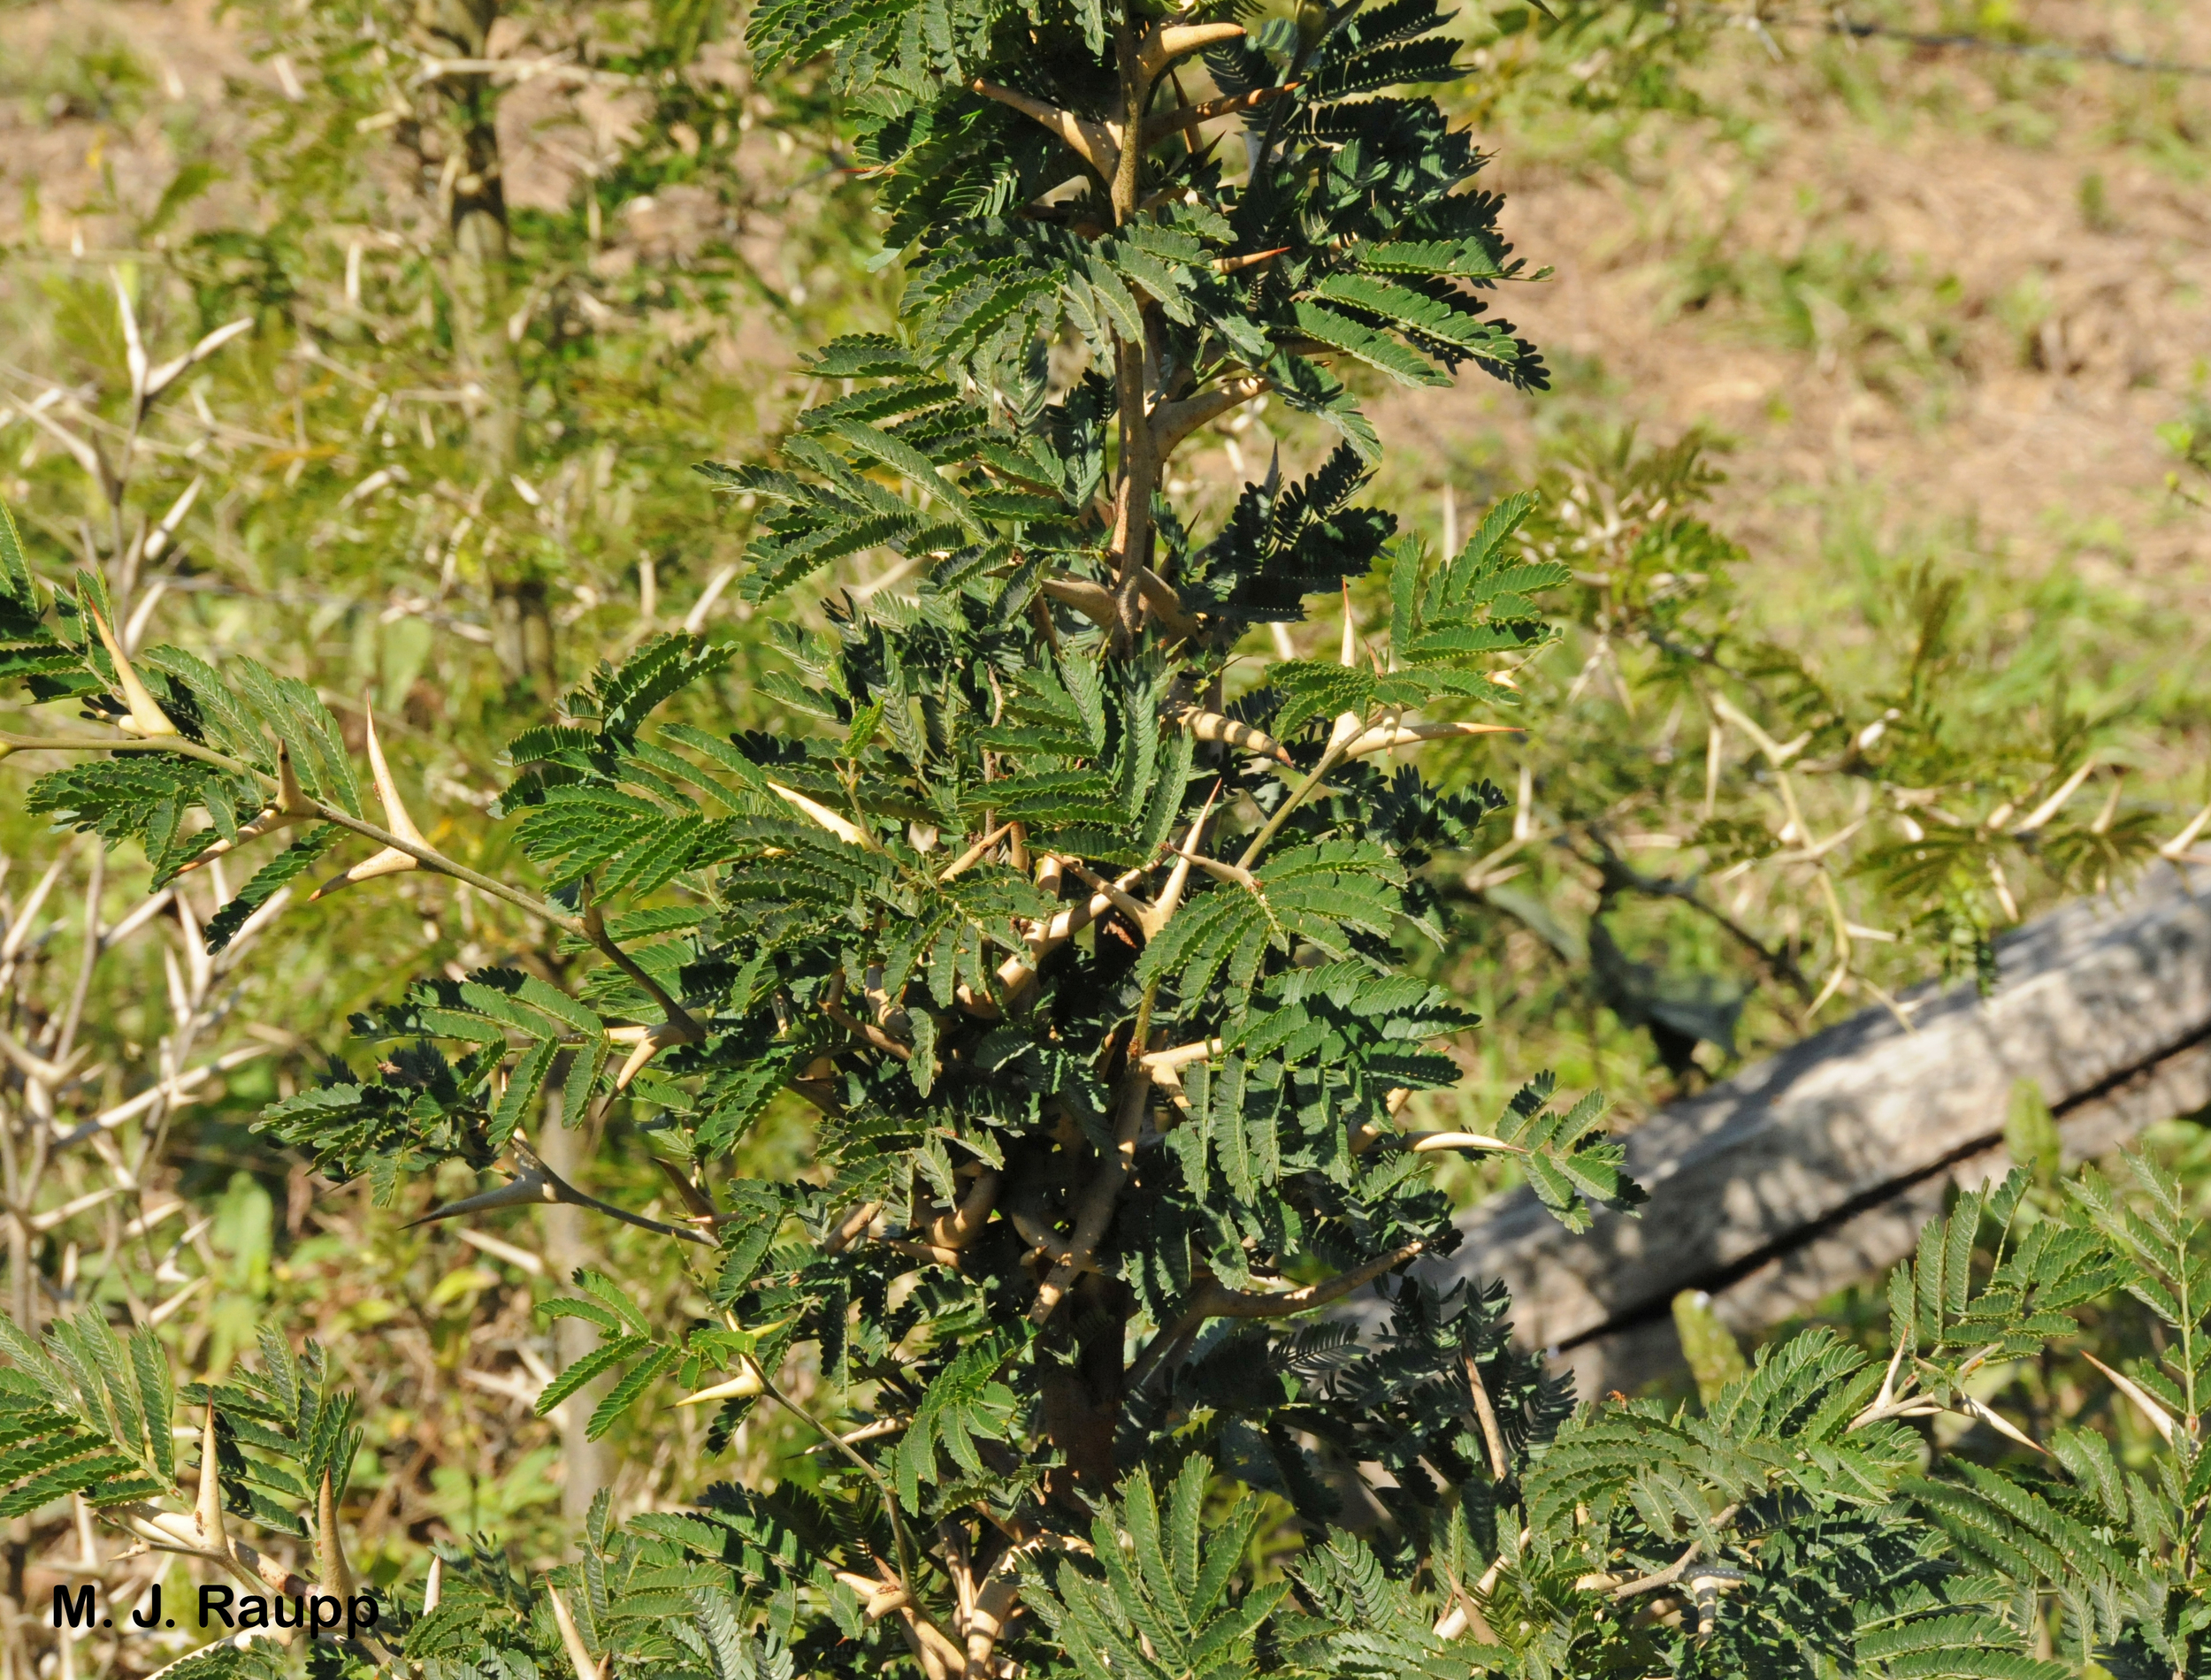 The bullhorn acacia is armed with a variety of defenses against hungry animals and competitive plants.       Normal   0           false   false   false     EN-US   X-NONE   X-NONE